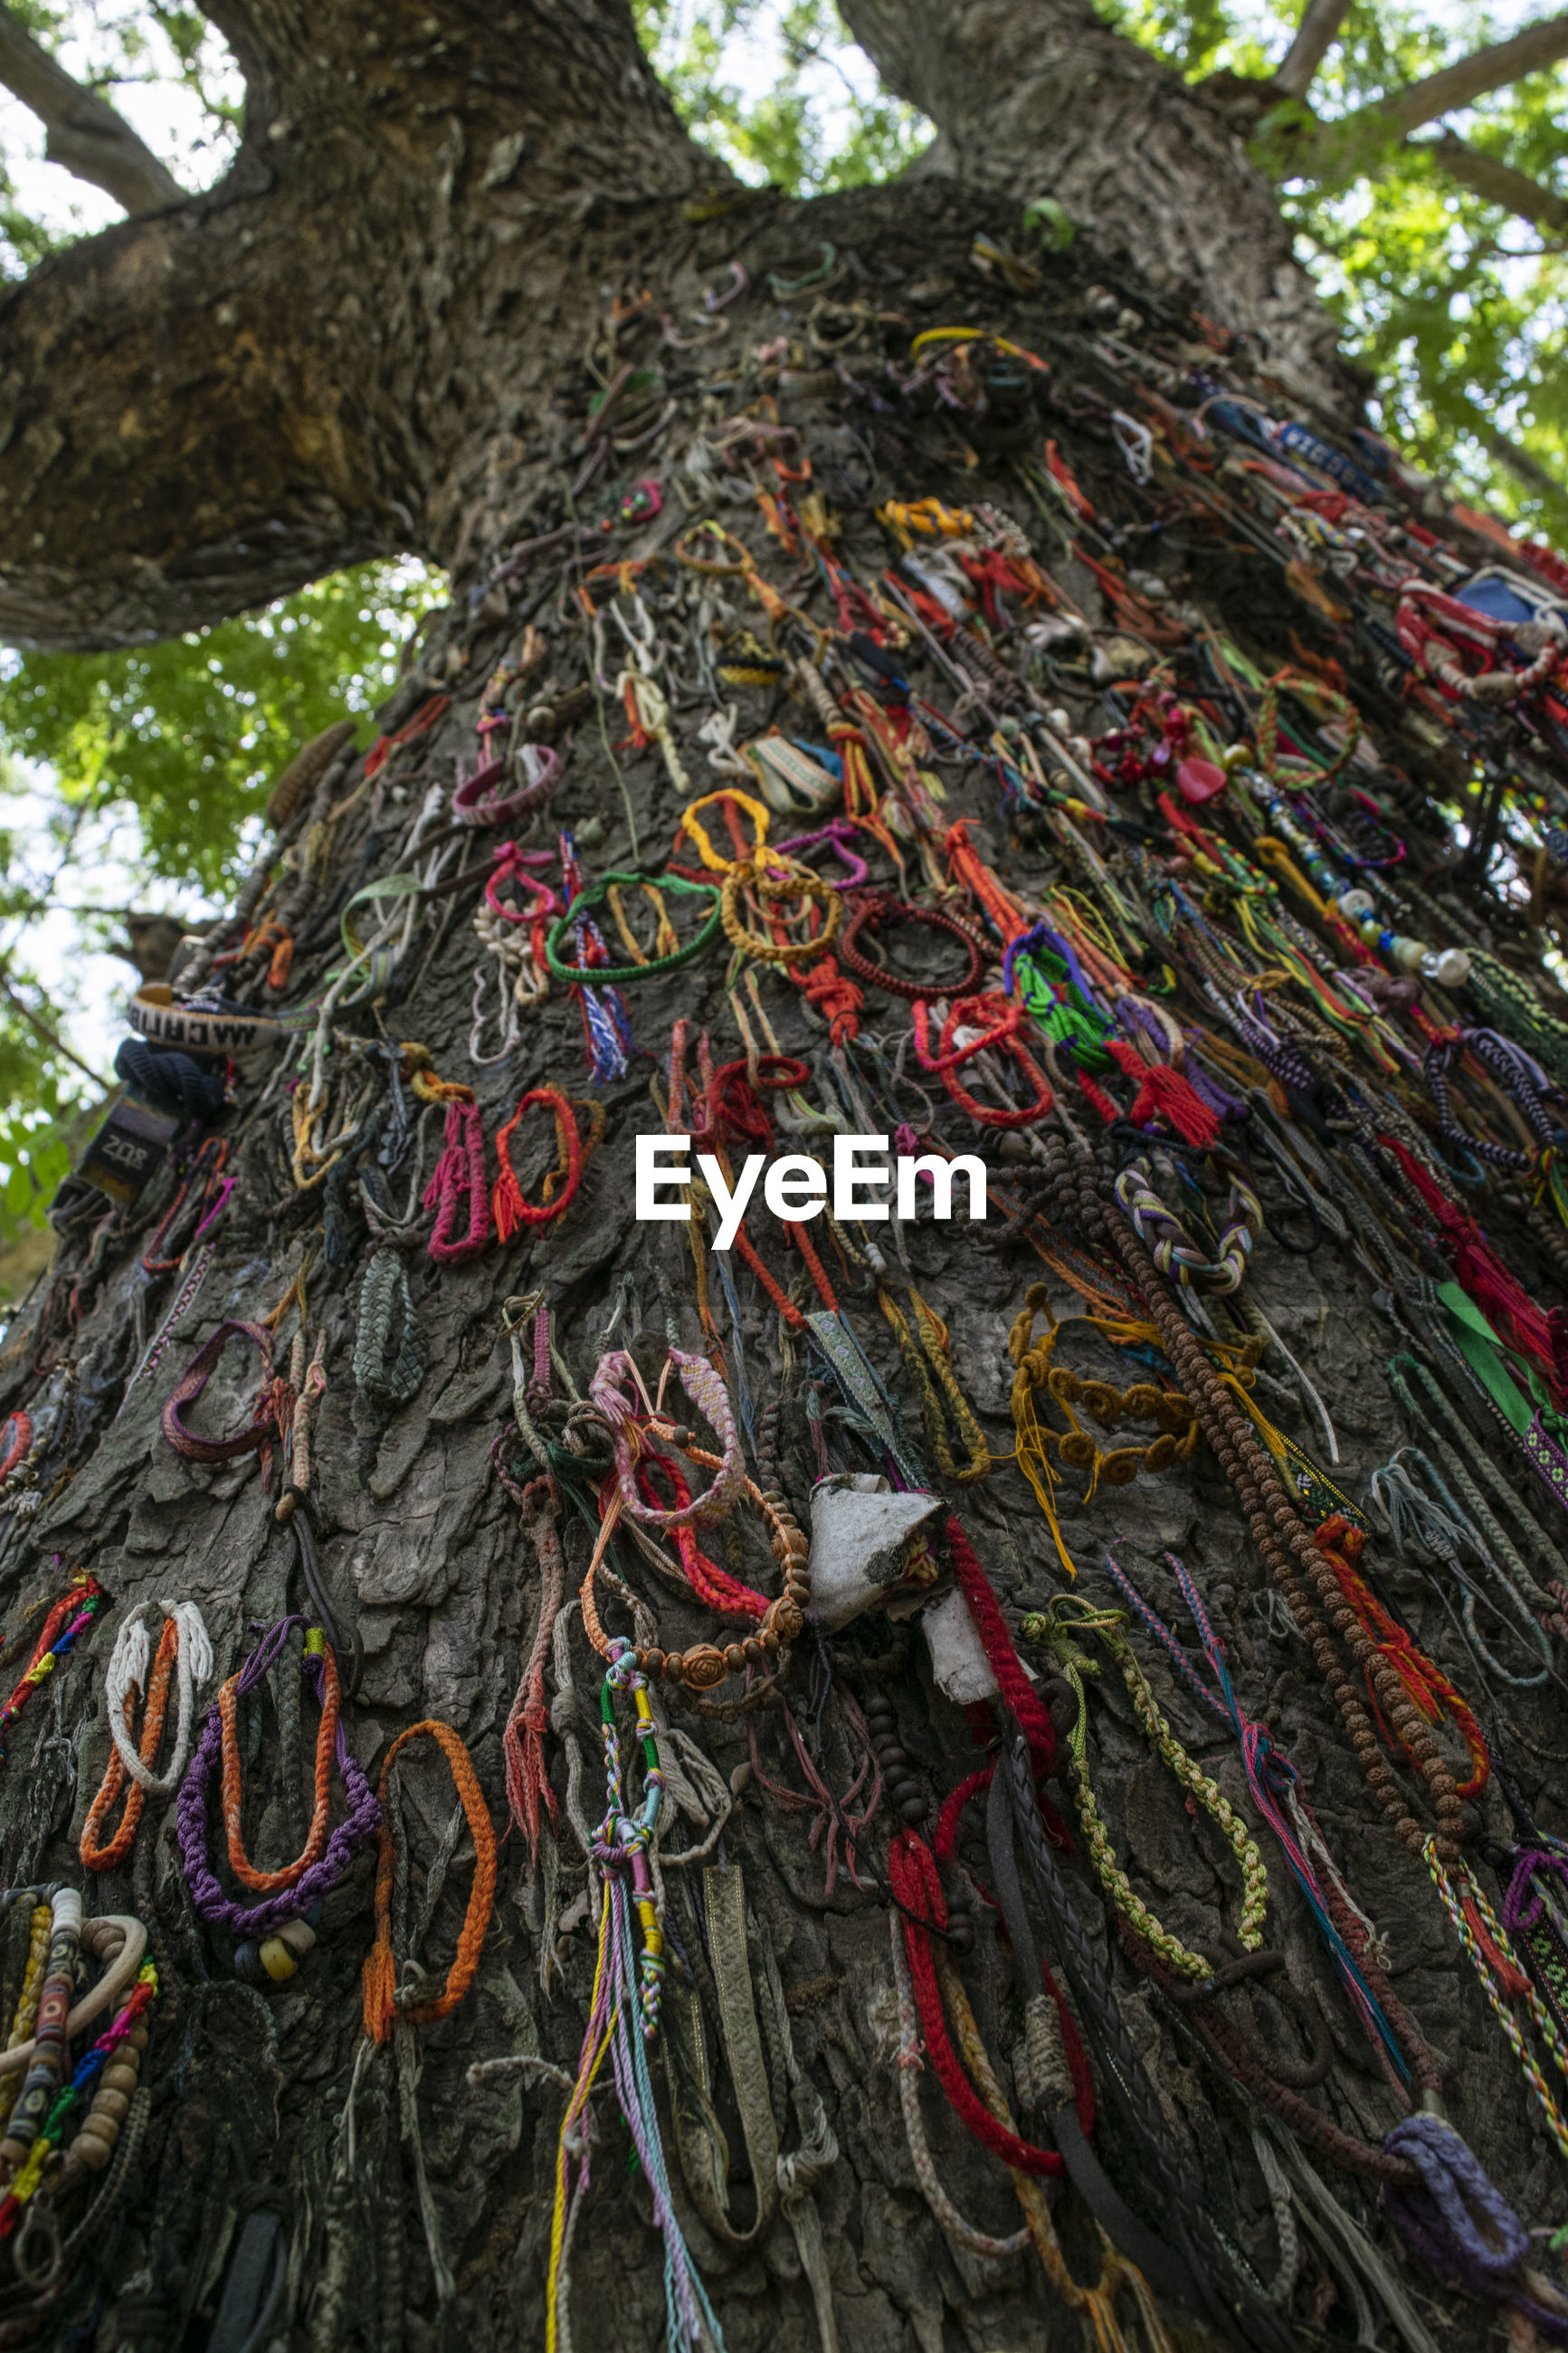 Low angle view of praying threads tied on tree trunk